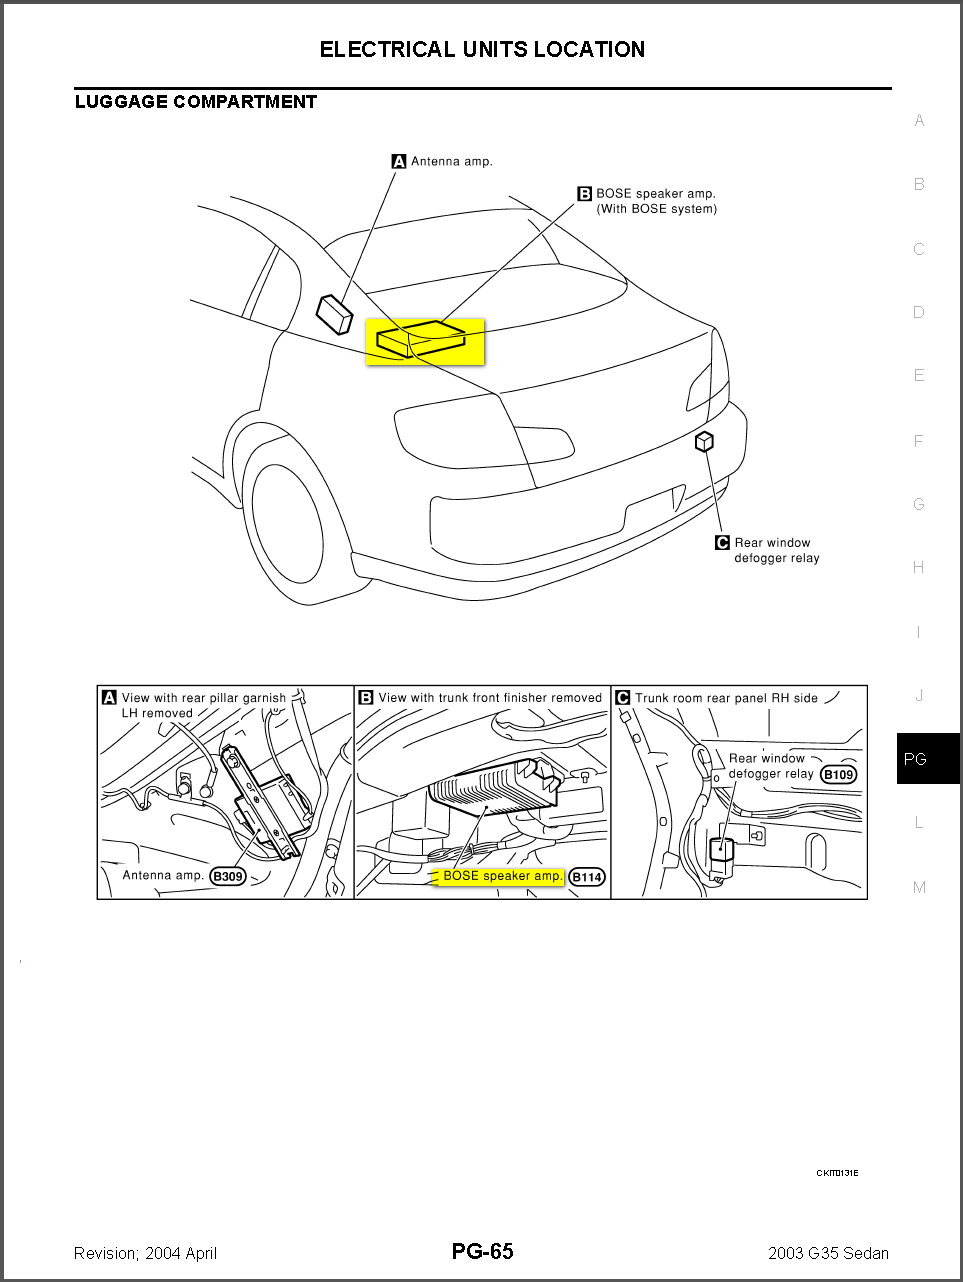 2003 Infiniti G35 Bose Stereo Wiring Diagram Diagrams Data Base Radio Rh Airfreshener Club On Wire Harness